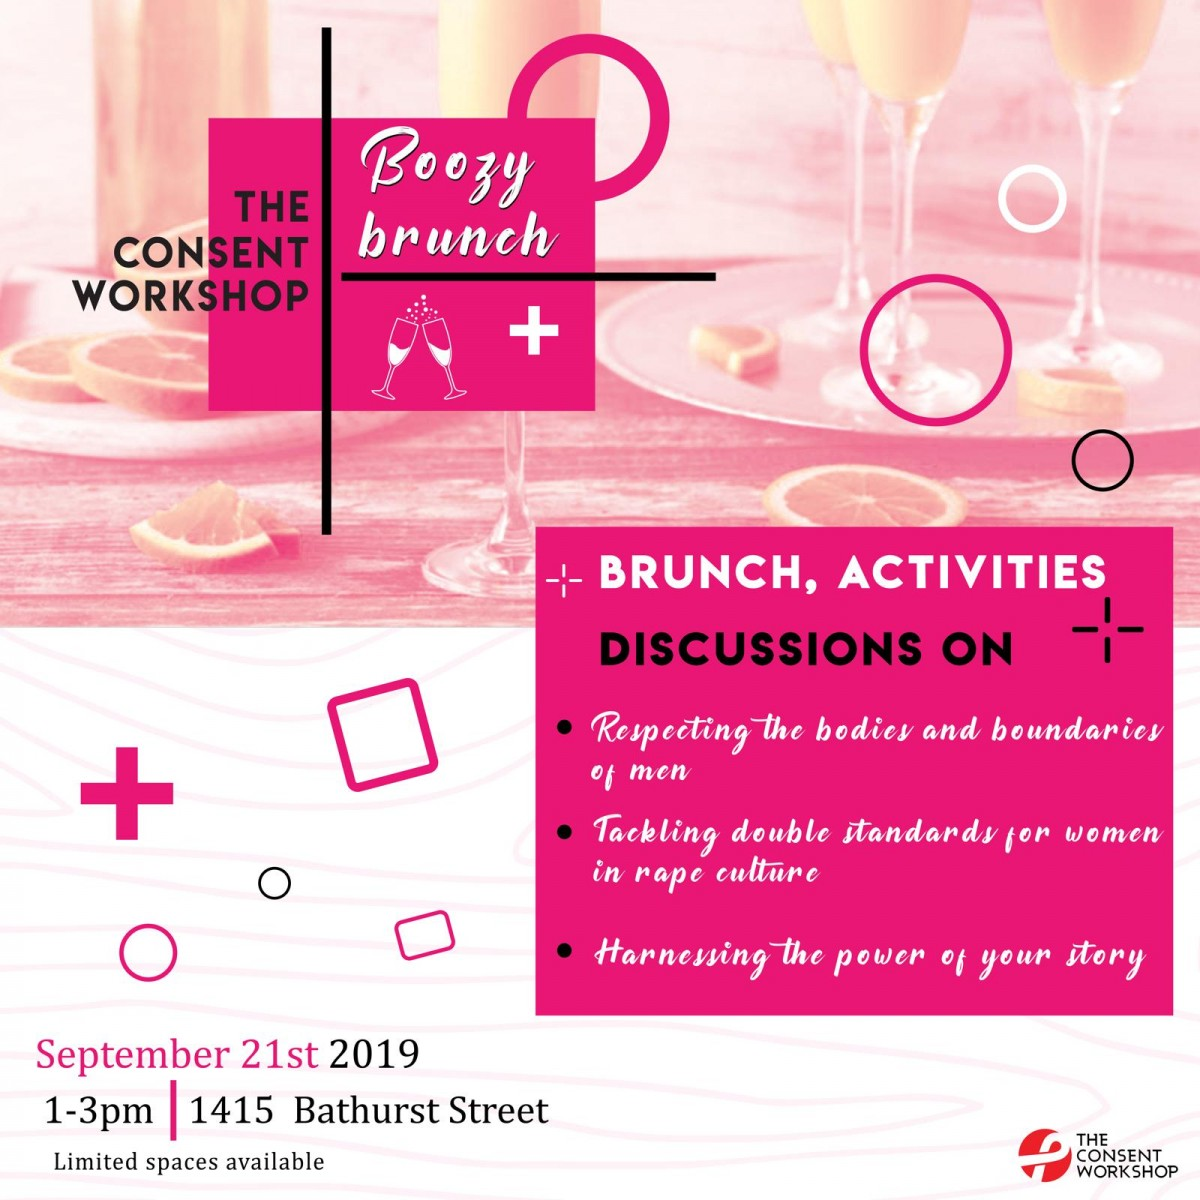 The Consent Workshop Boozy Brunch: Women's Only Workshop